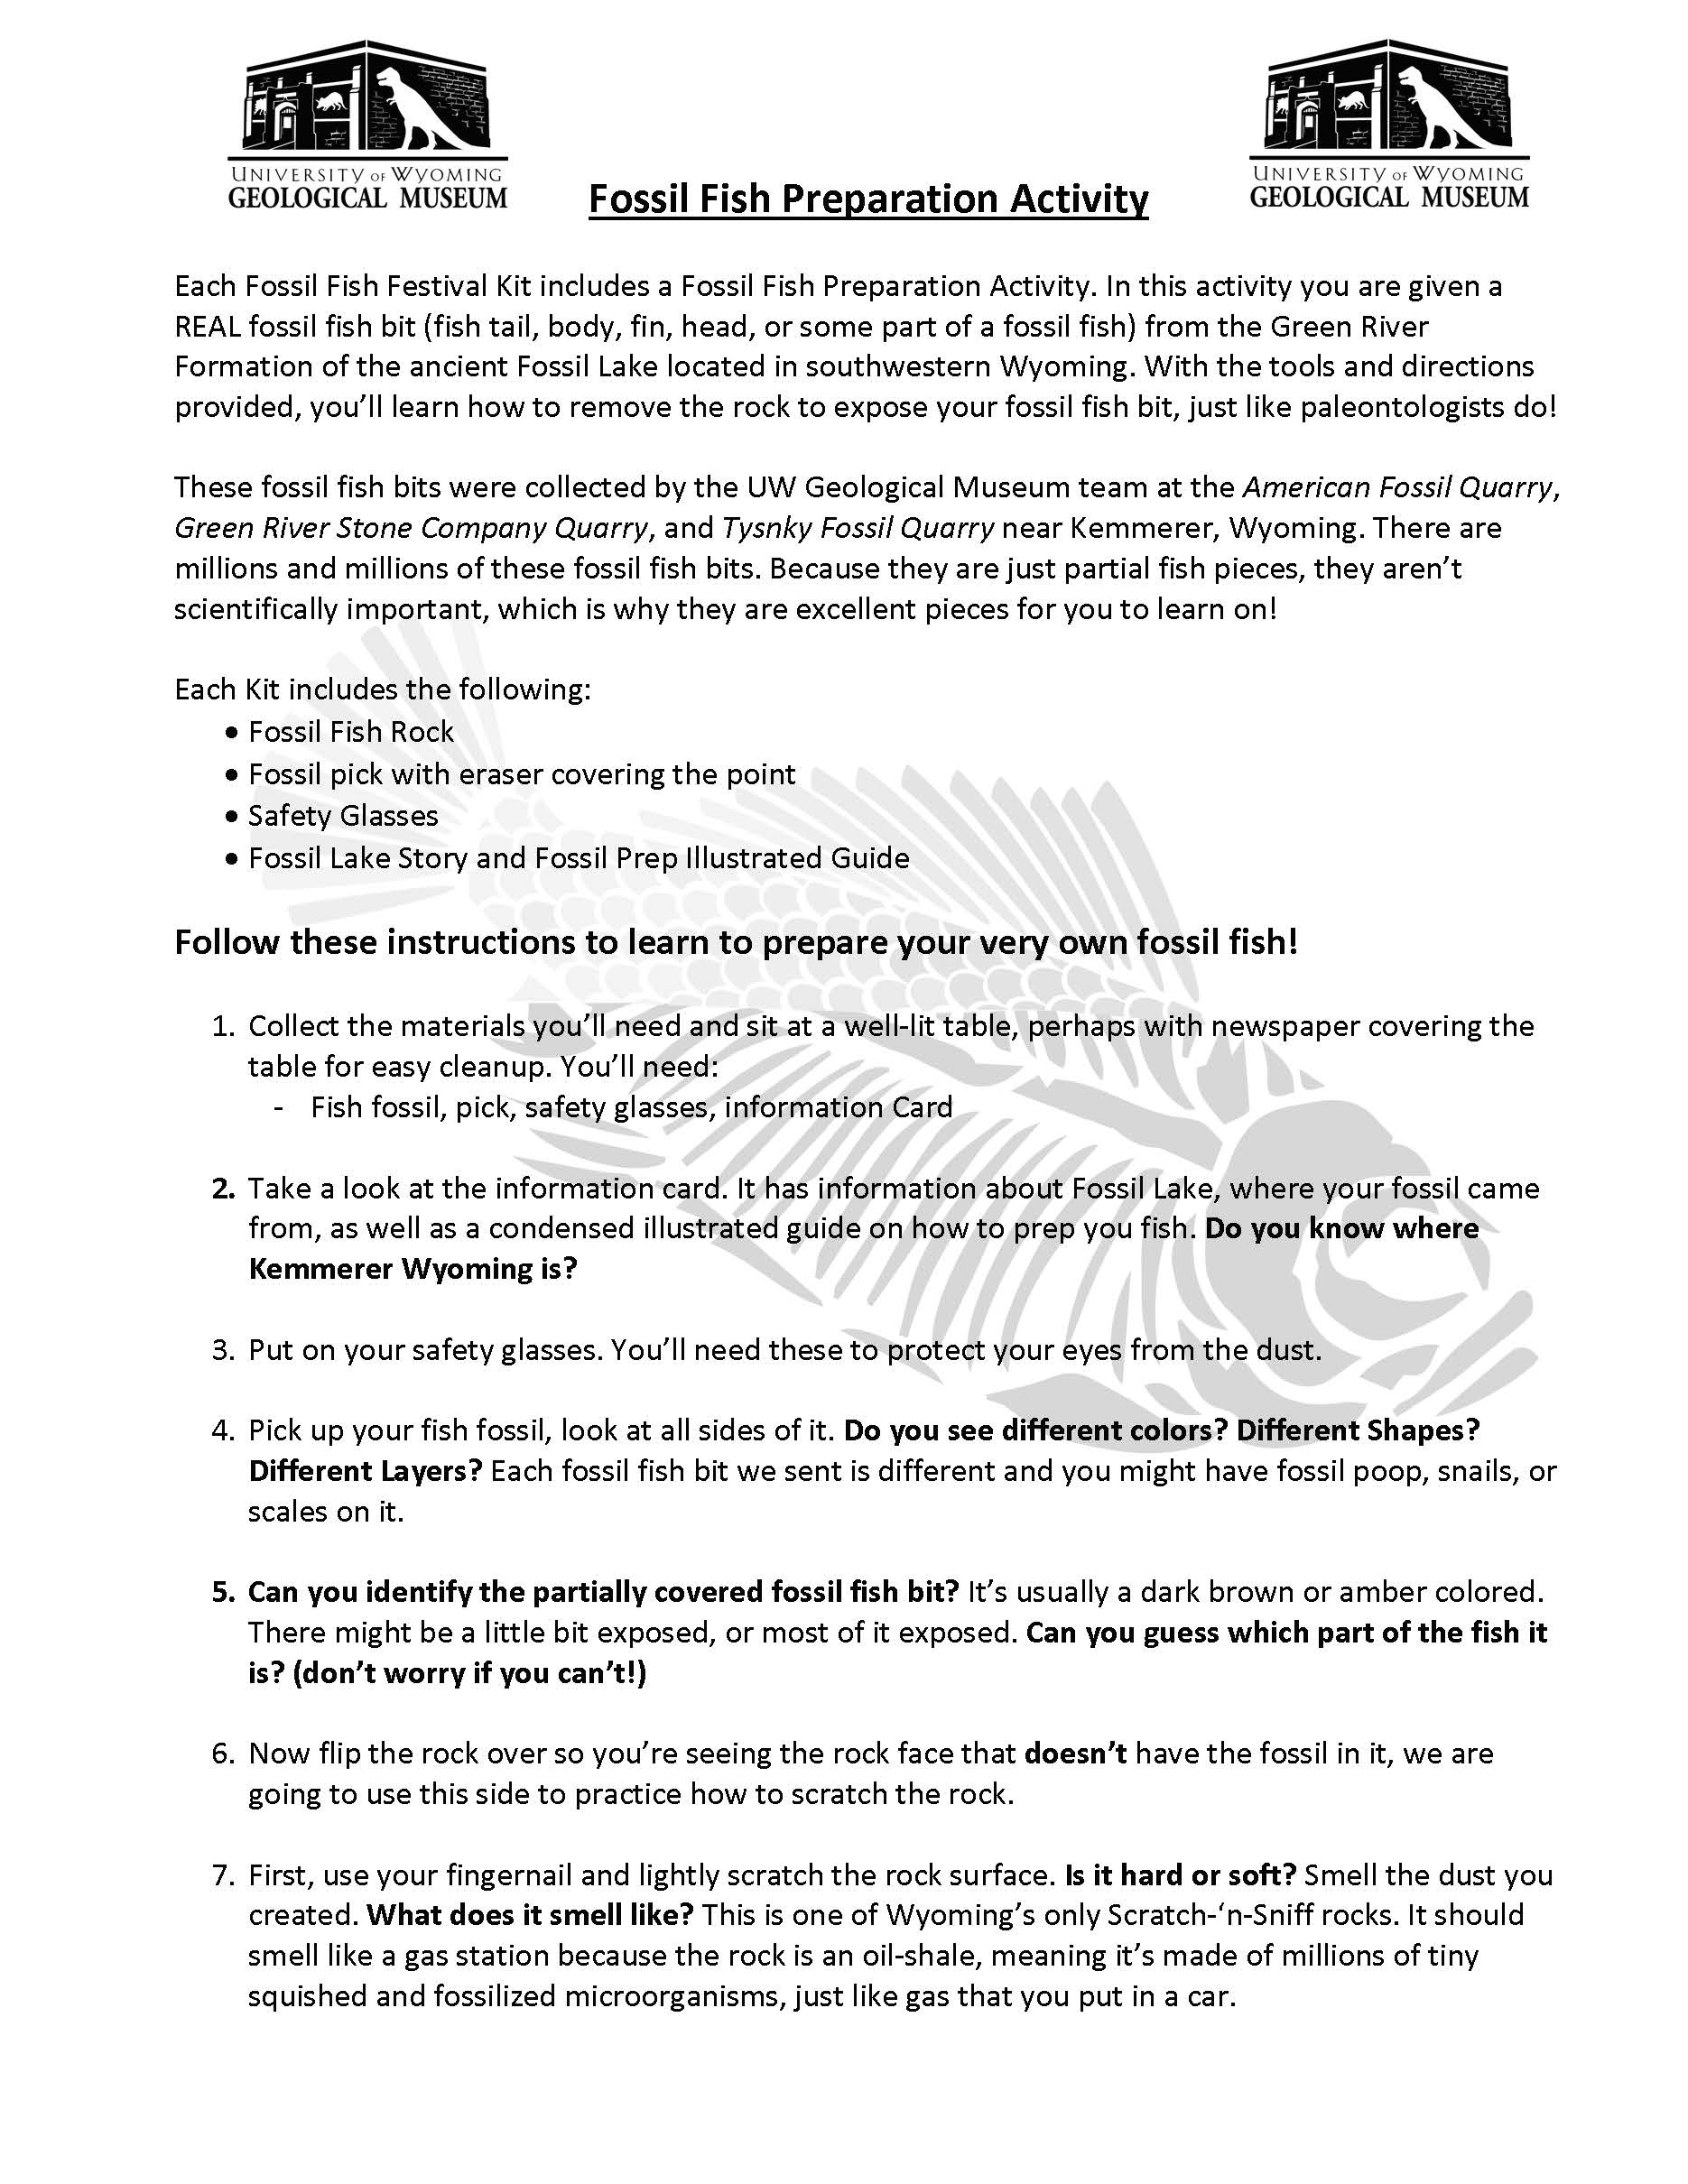 Prep_Directions_Page_1